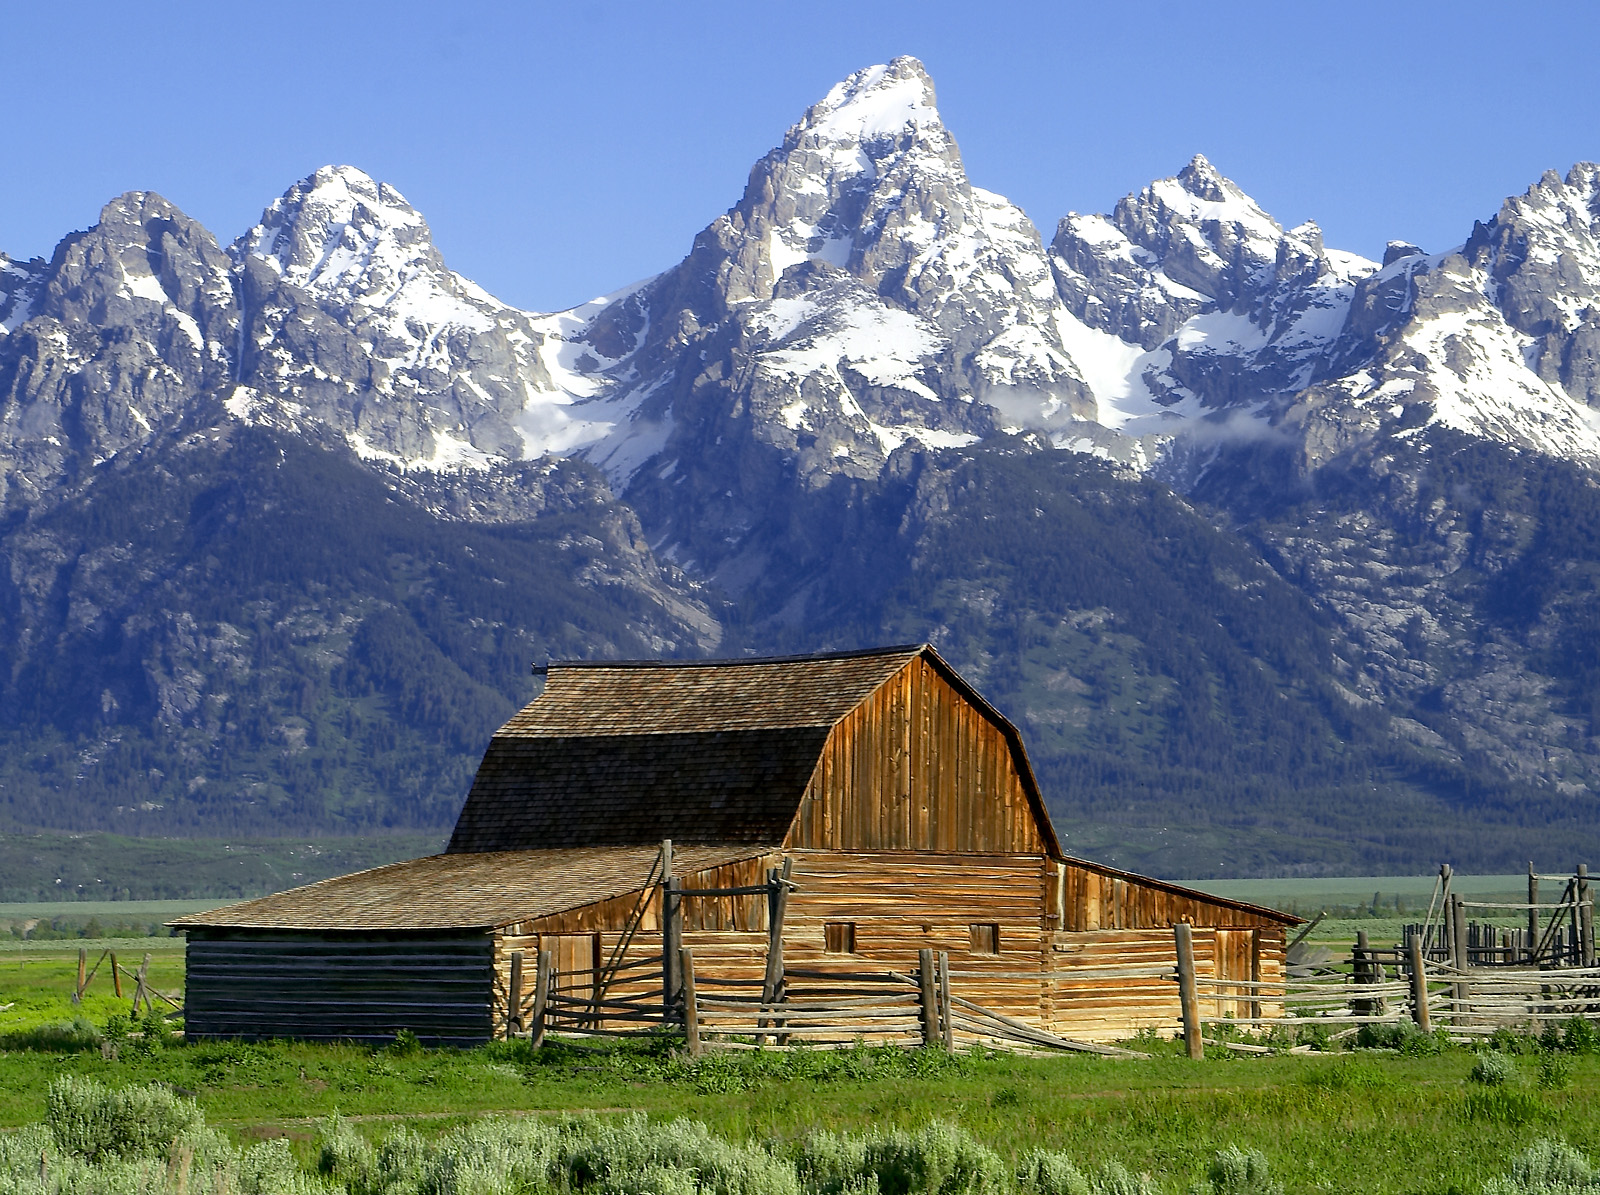 FileBarns grand tetonsjpg   Wikipedia the encyclopedia 1600x1195